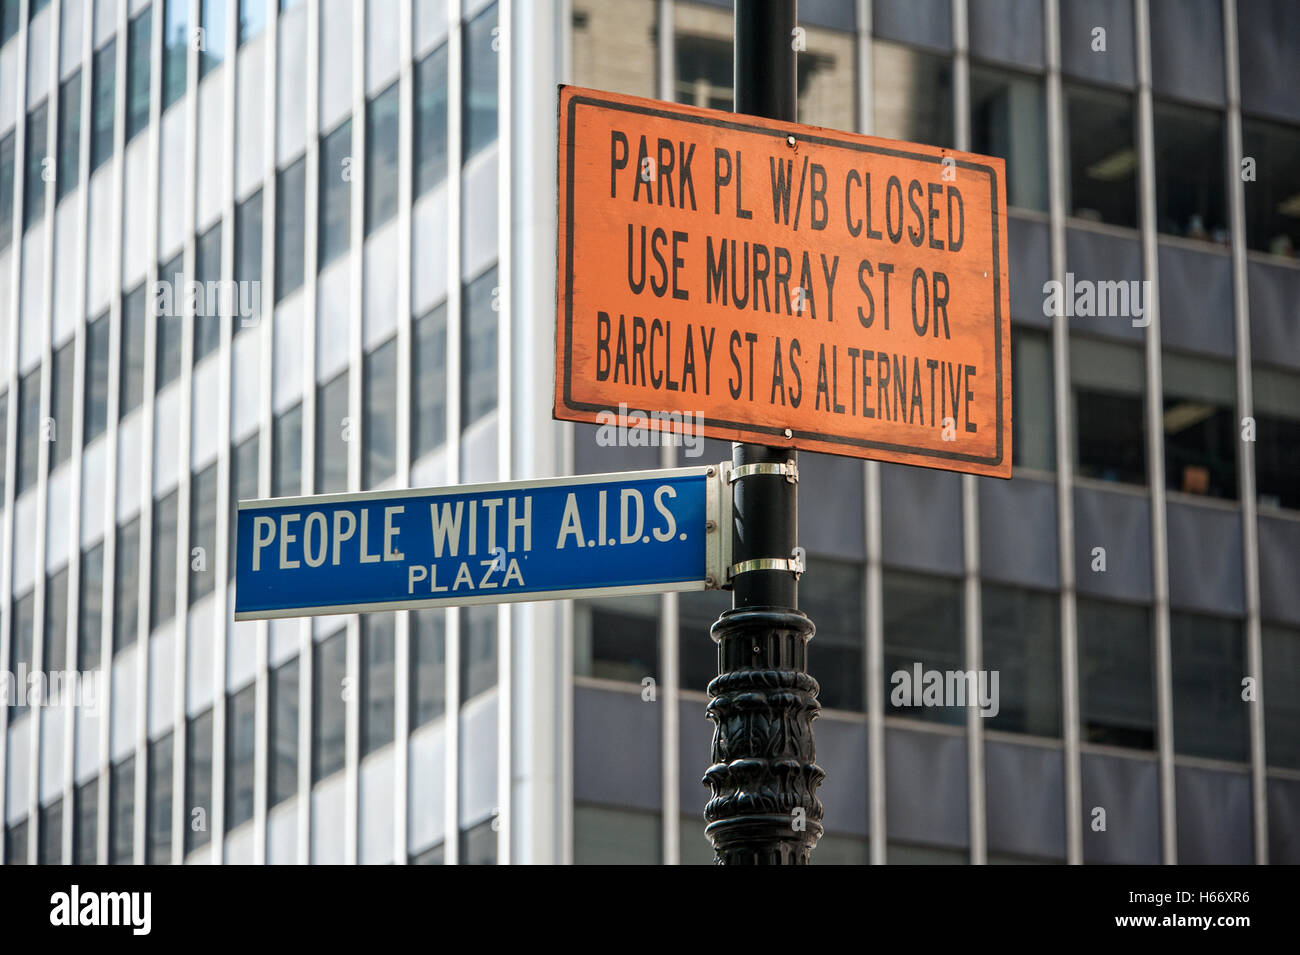 Street sign  'People with AIDS Plaza', SoHo, Manhattan, New York City - Stock Image